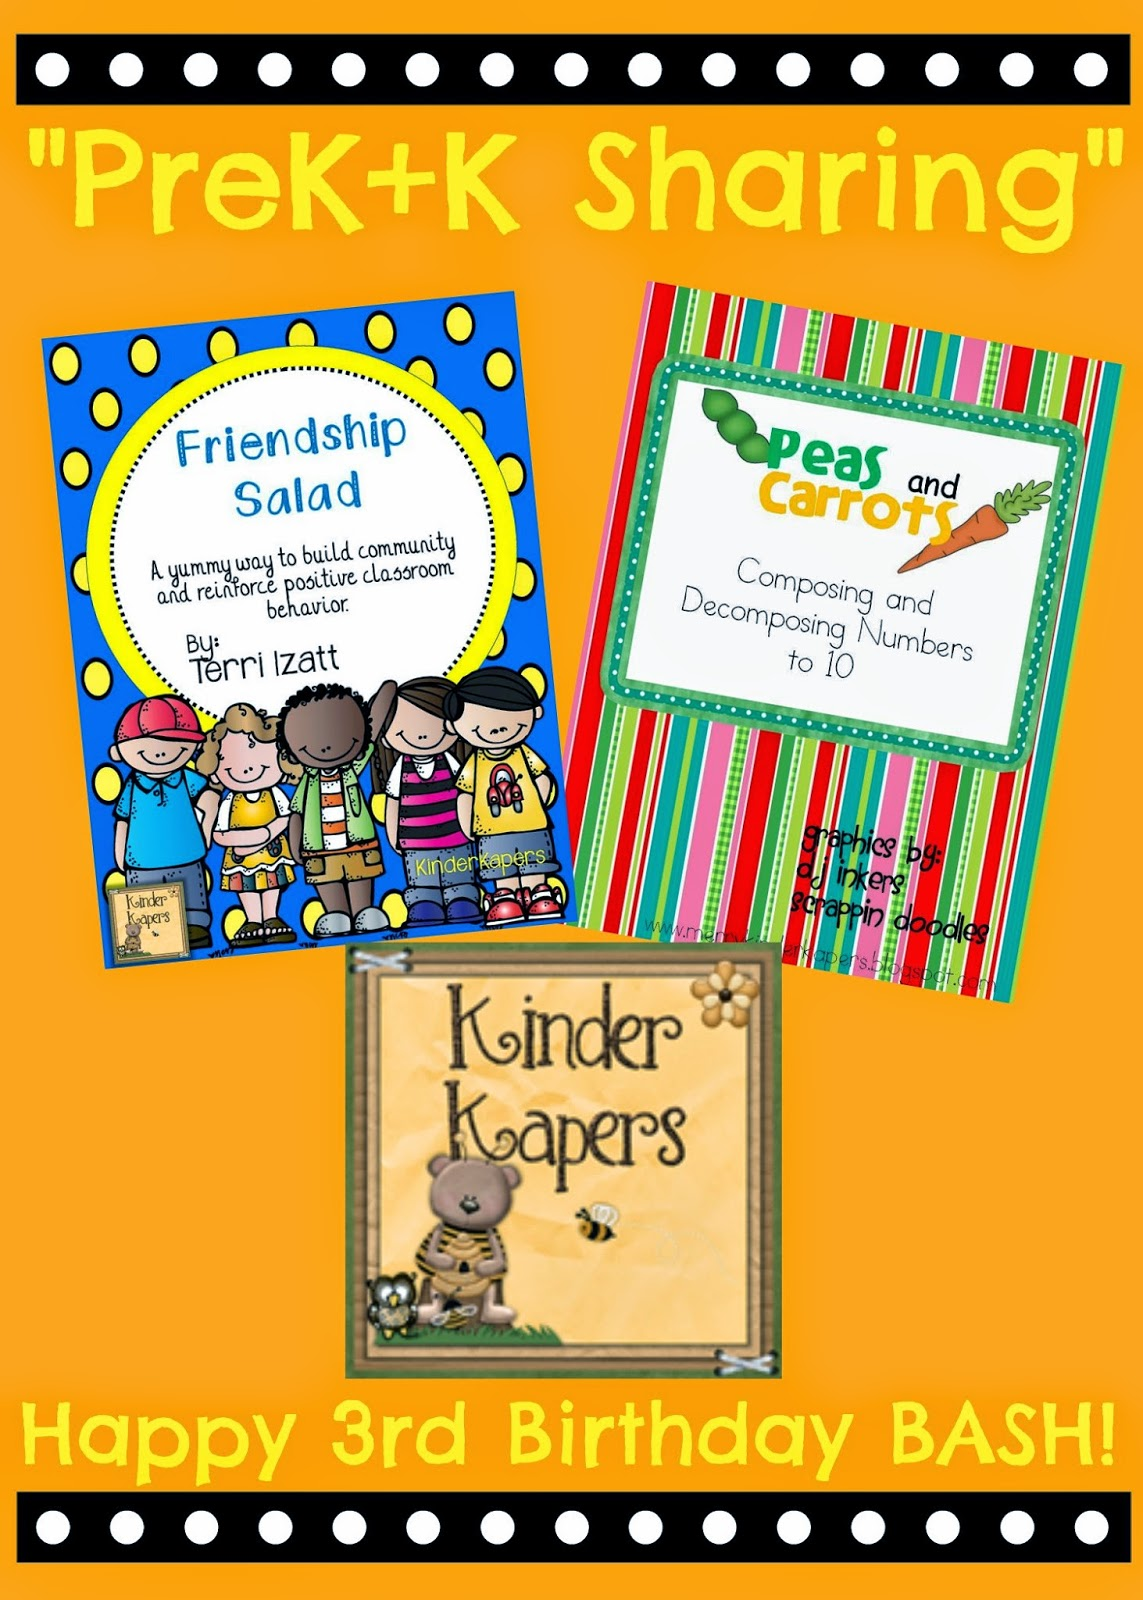 PreK+K Sharing Collaboration: THIRD Birthday Celebration Give Away prizes from KinderKapers